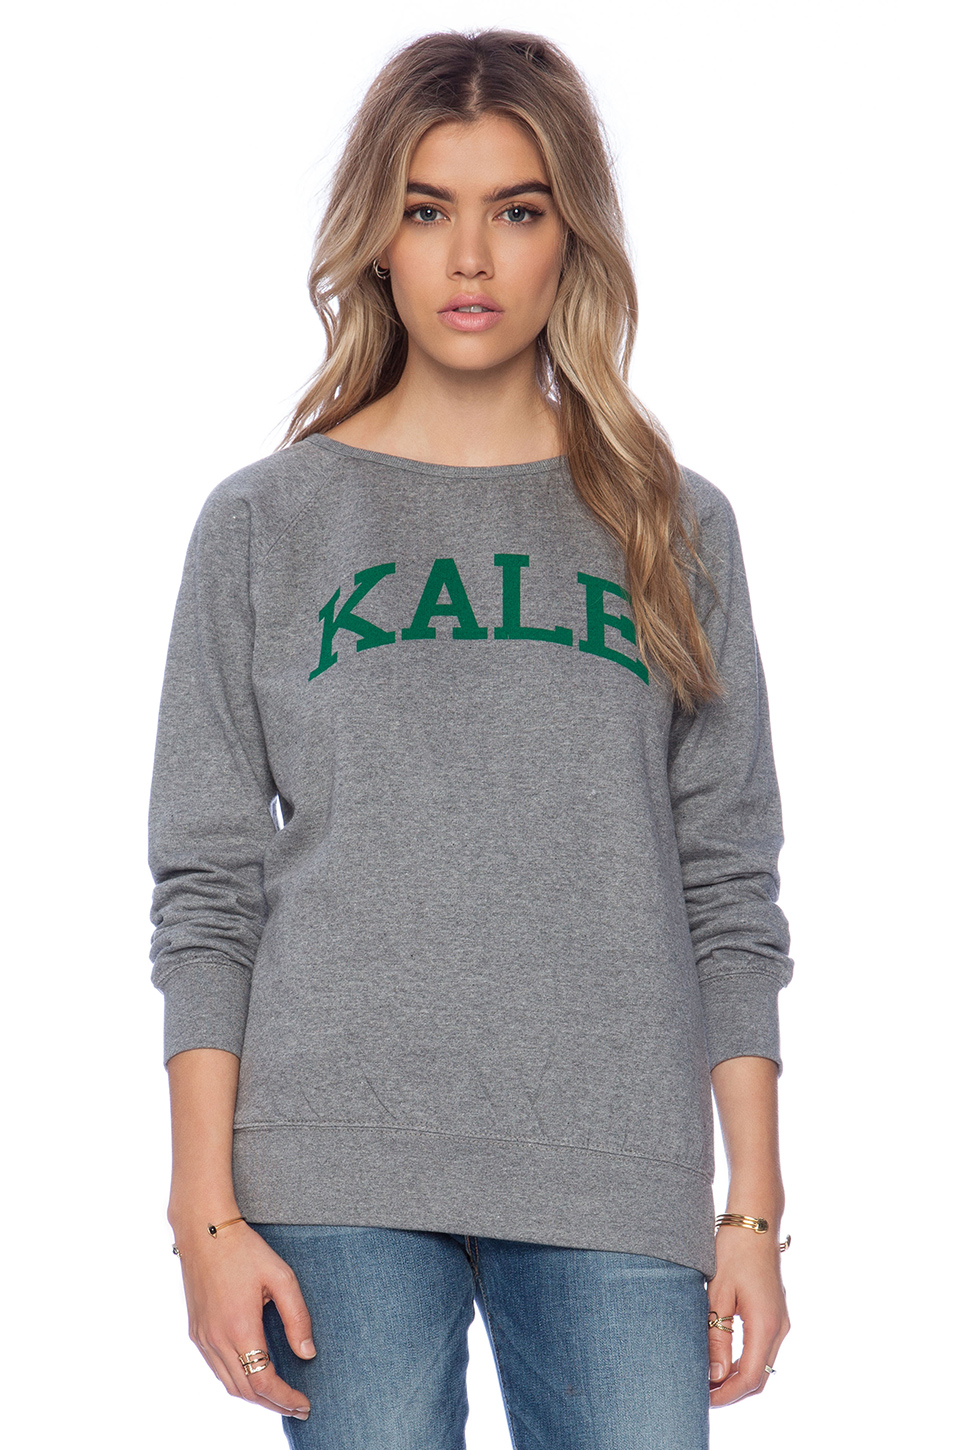 Sub_urban riot kale sweatshirt in heather grey from revolveclothing.com